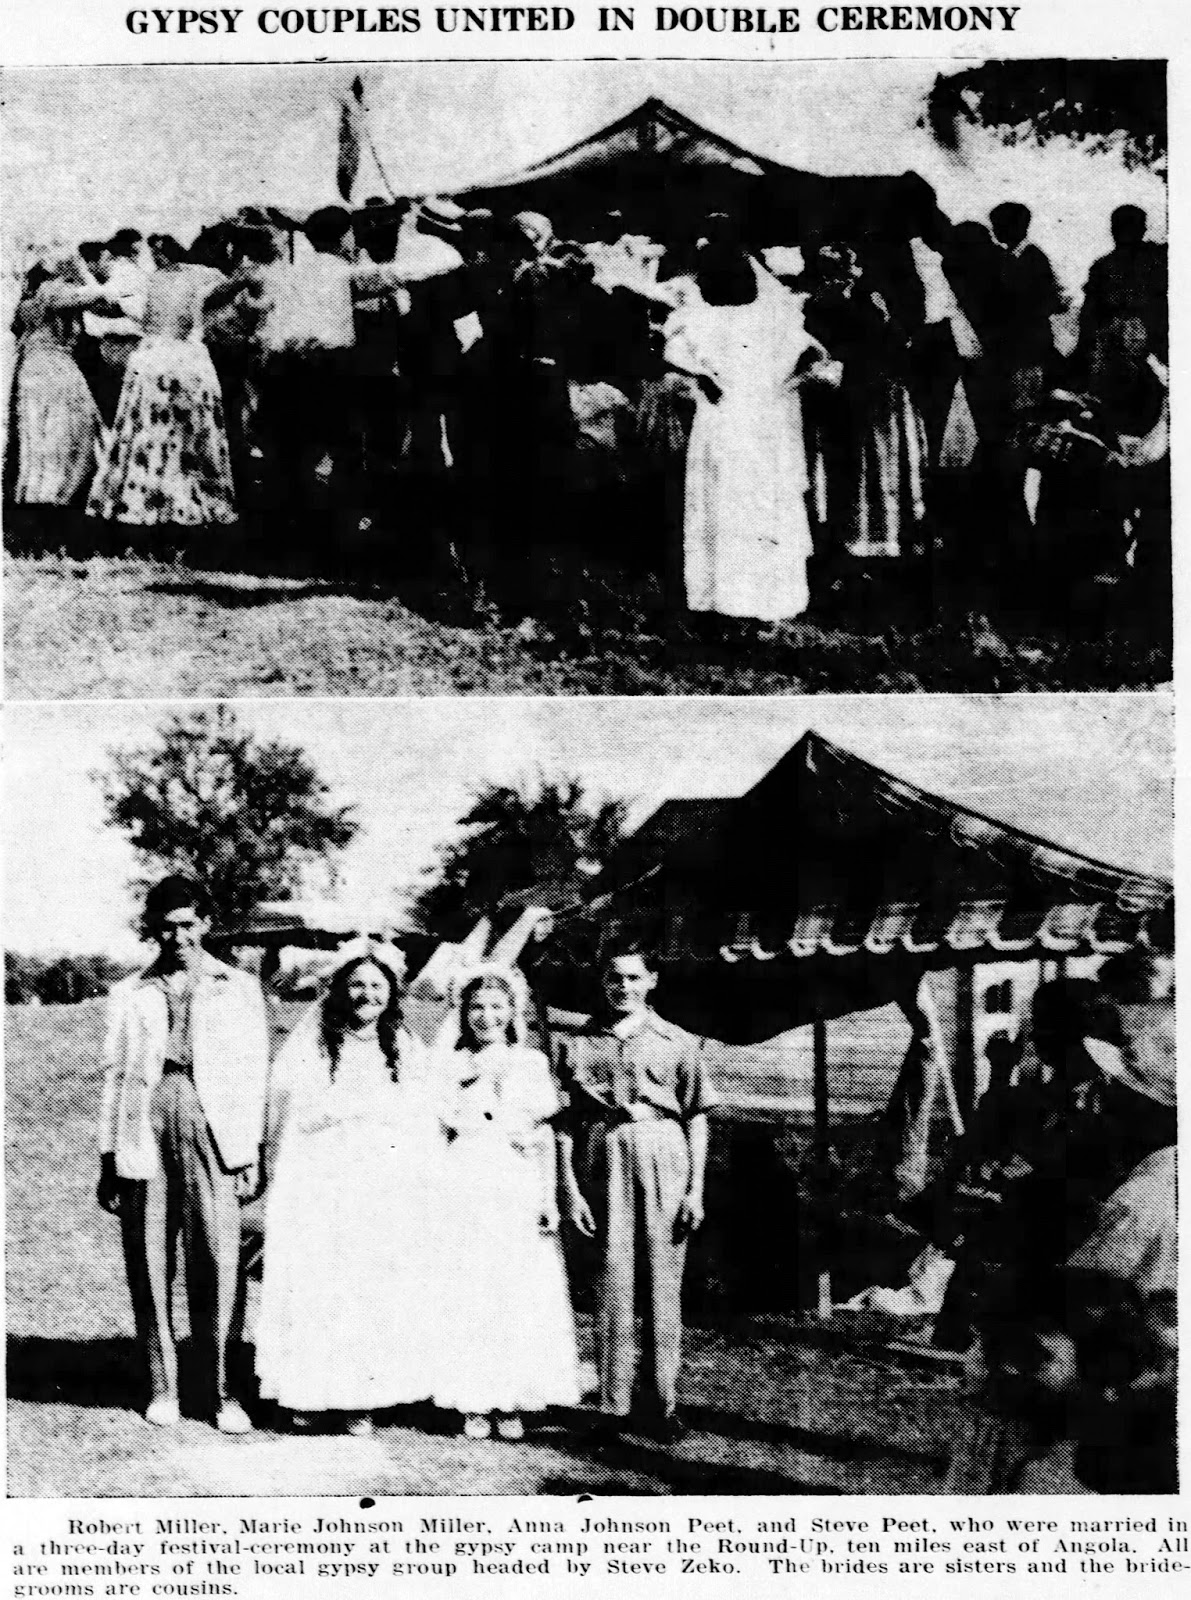 Indiana steuben county orland - At Noon A Feast Was Prepared In One Of The Tents The Feast Commenced With The Official Announcement Of The Marriage And Was Followed By Toasts To The Tow